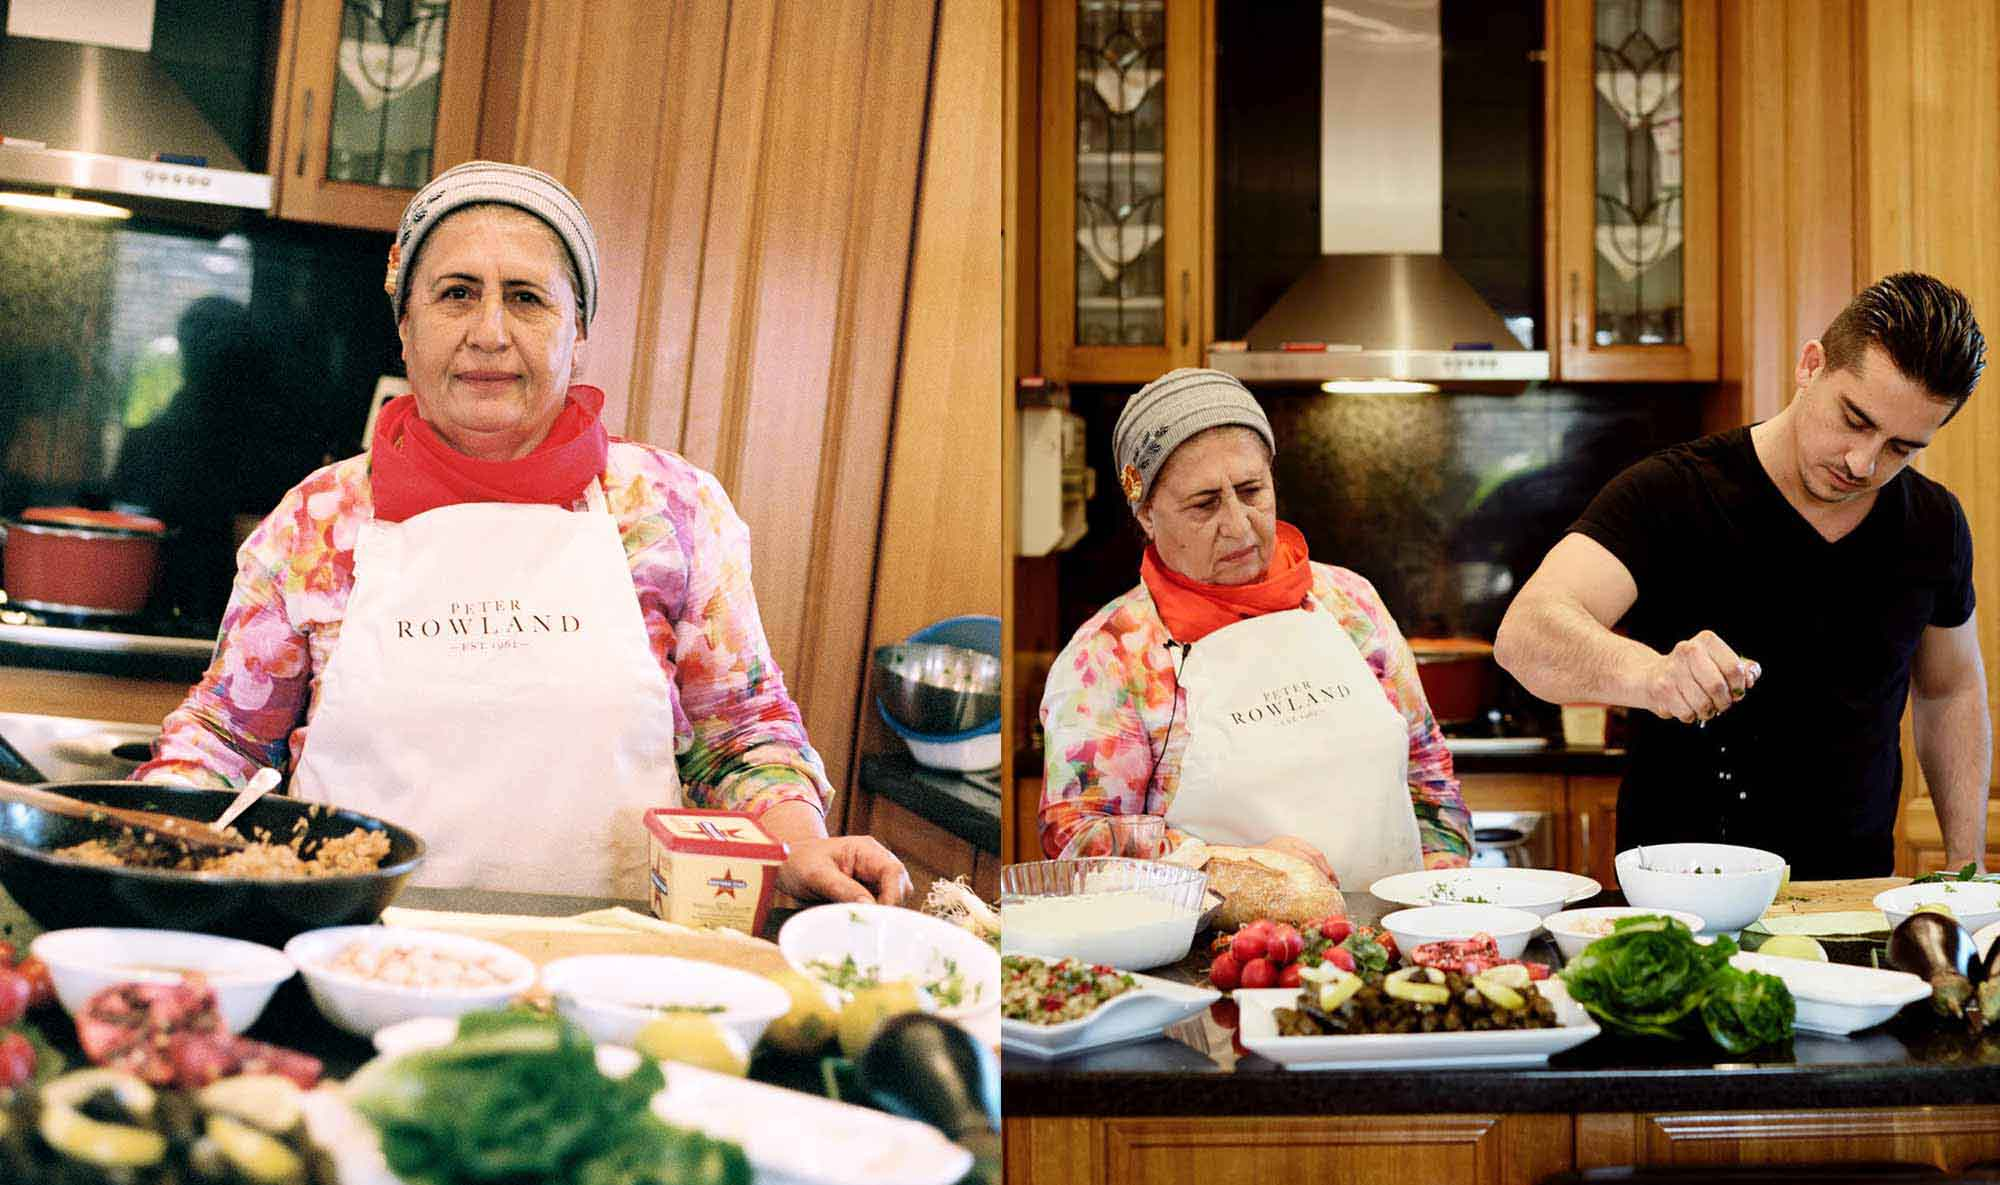 Turkish-born Fatma and her restaurateur son Kemal